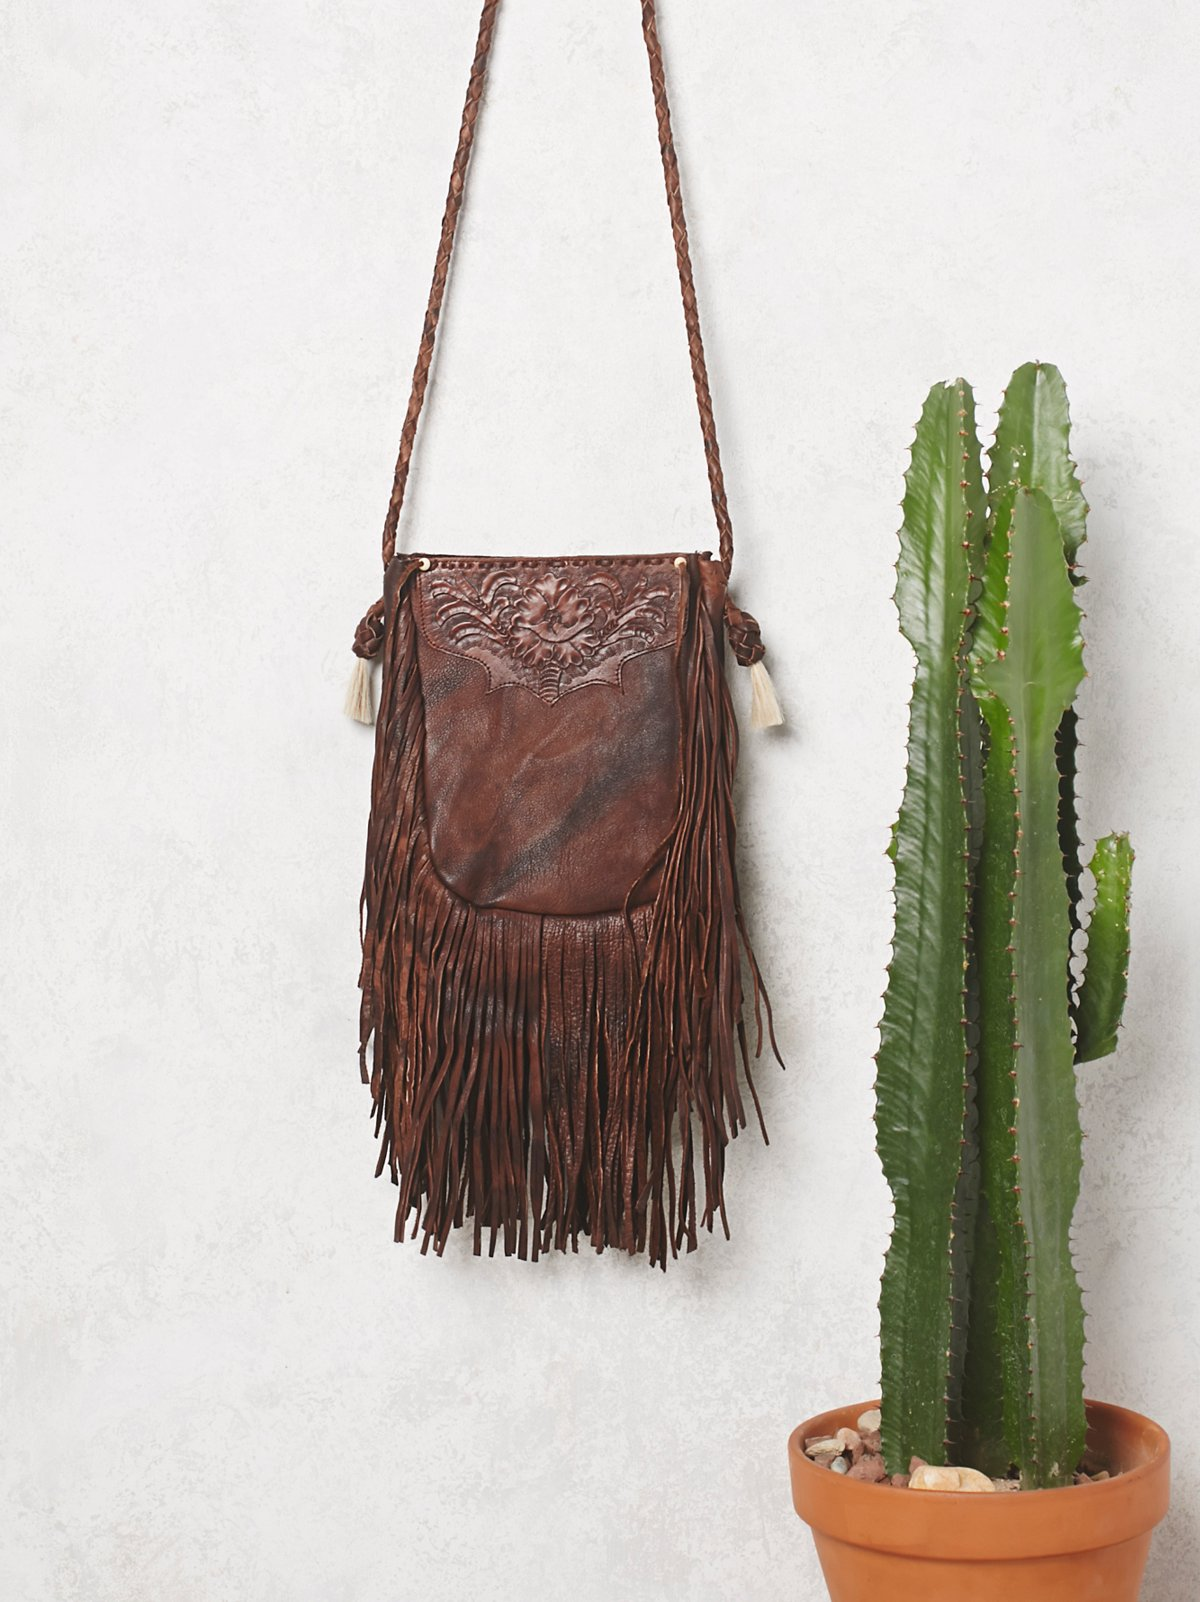 Cactus Flower Crossbody